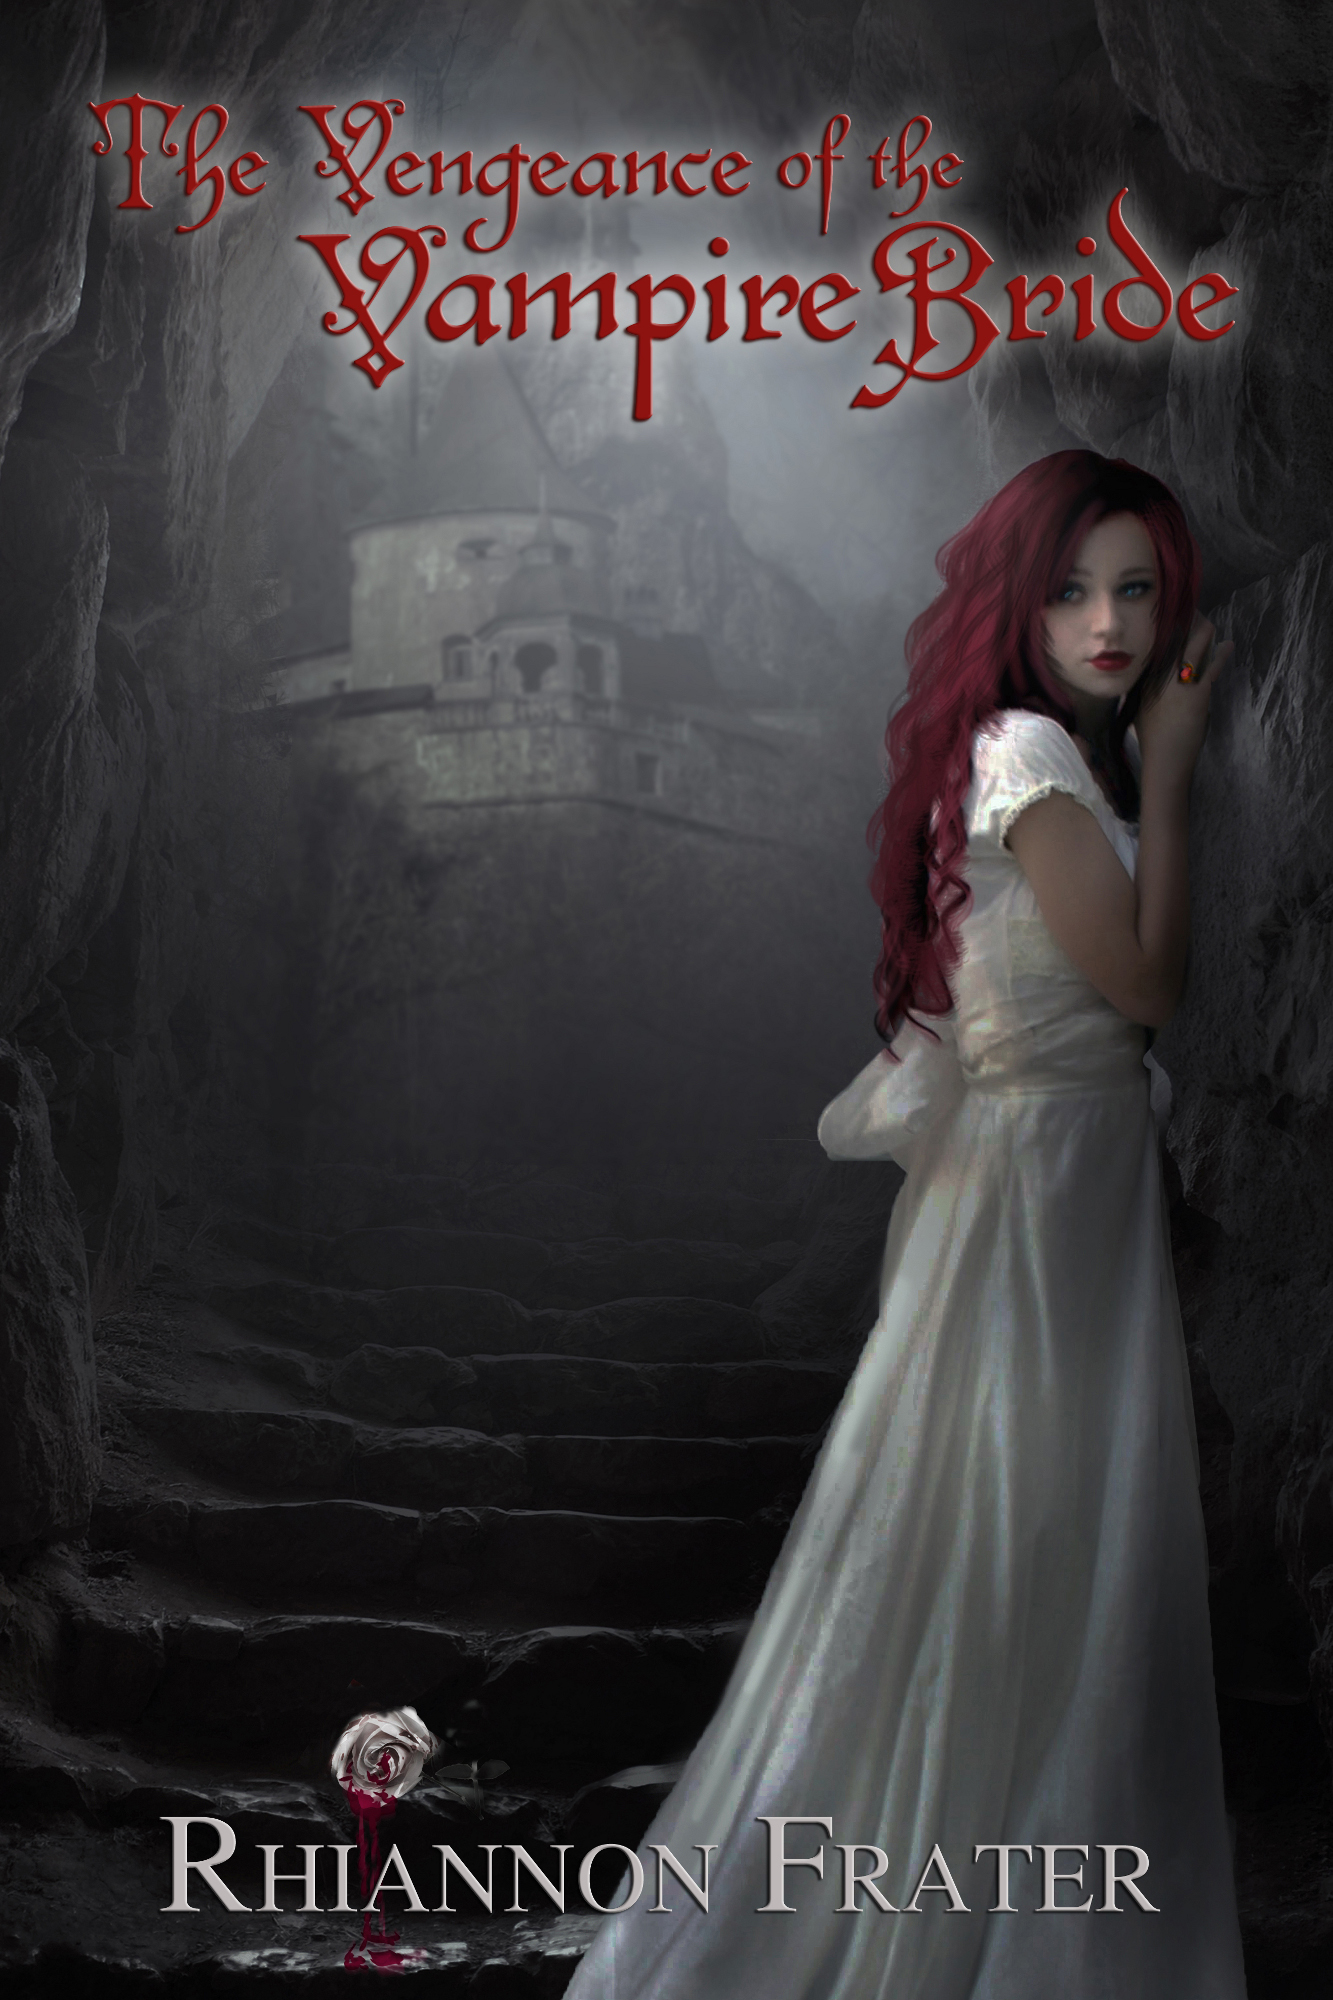 The Vengeance of the Vampire Bride (Vampire Bride #2)